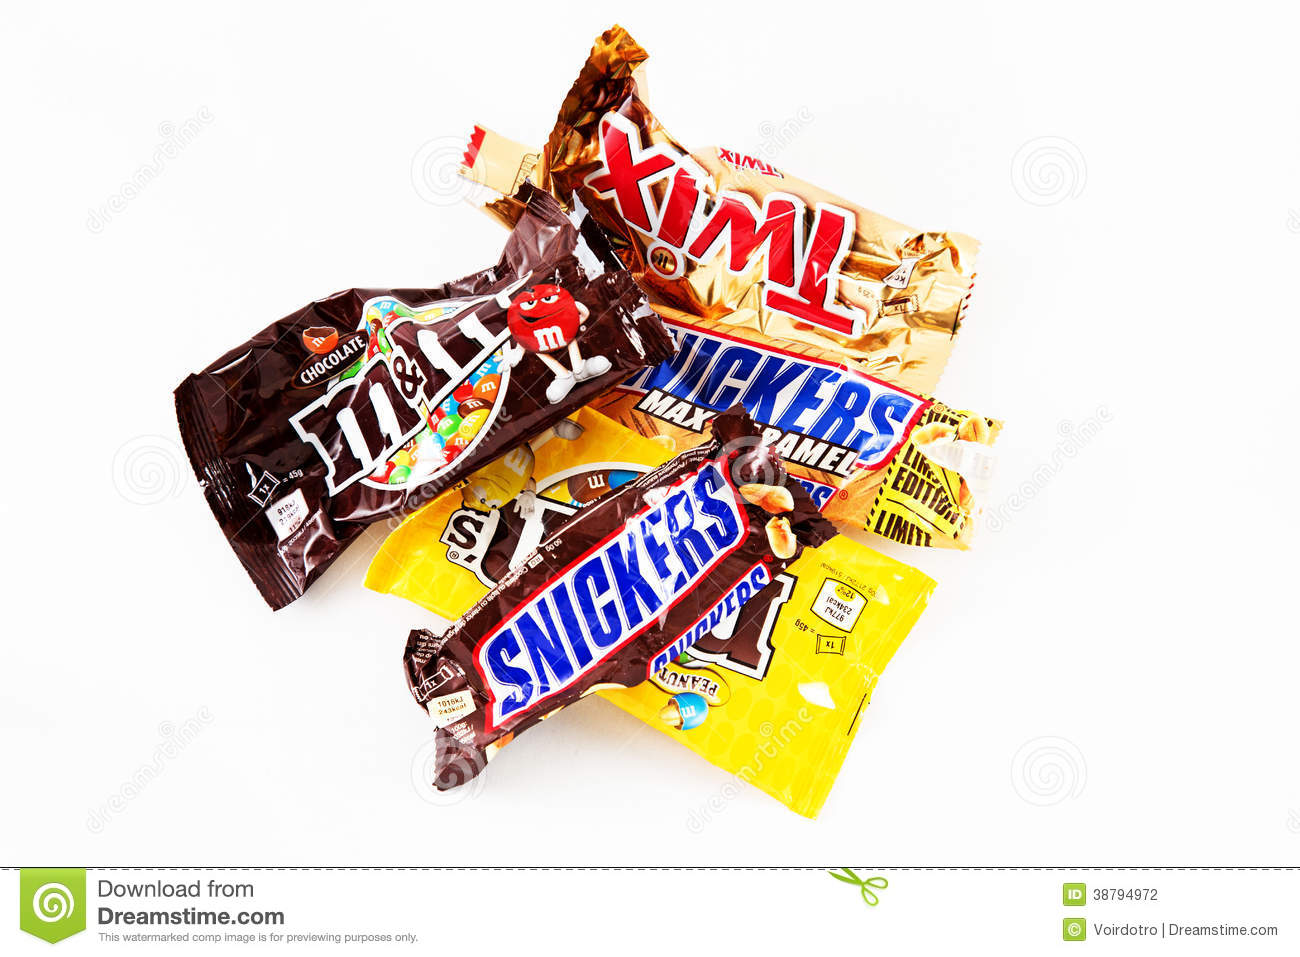 A E D E Bc B Ff Ff D Snickers Chocolate Snickers Bar additionally Hot Chocolate Signs For Christmas as well Pieces Aerated Chocolate Beidge Background Seamless Pattern Porous in addition Candy besides Envolturas Vacas De Las Barras De Caramelo De Chocolate. on chocolate candy bar clip art